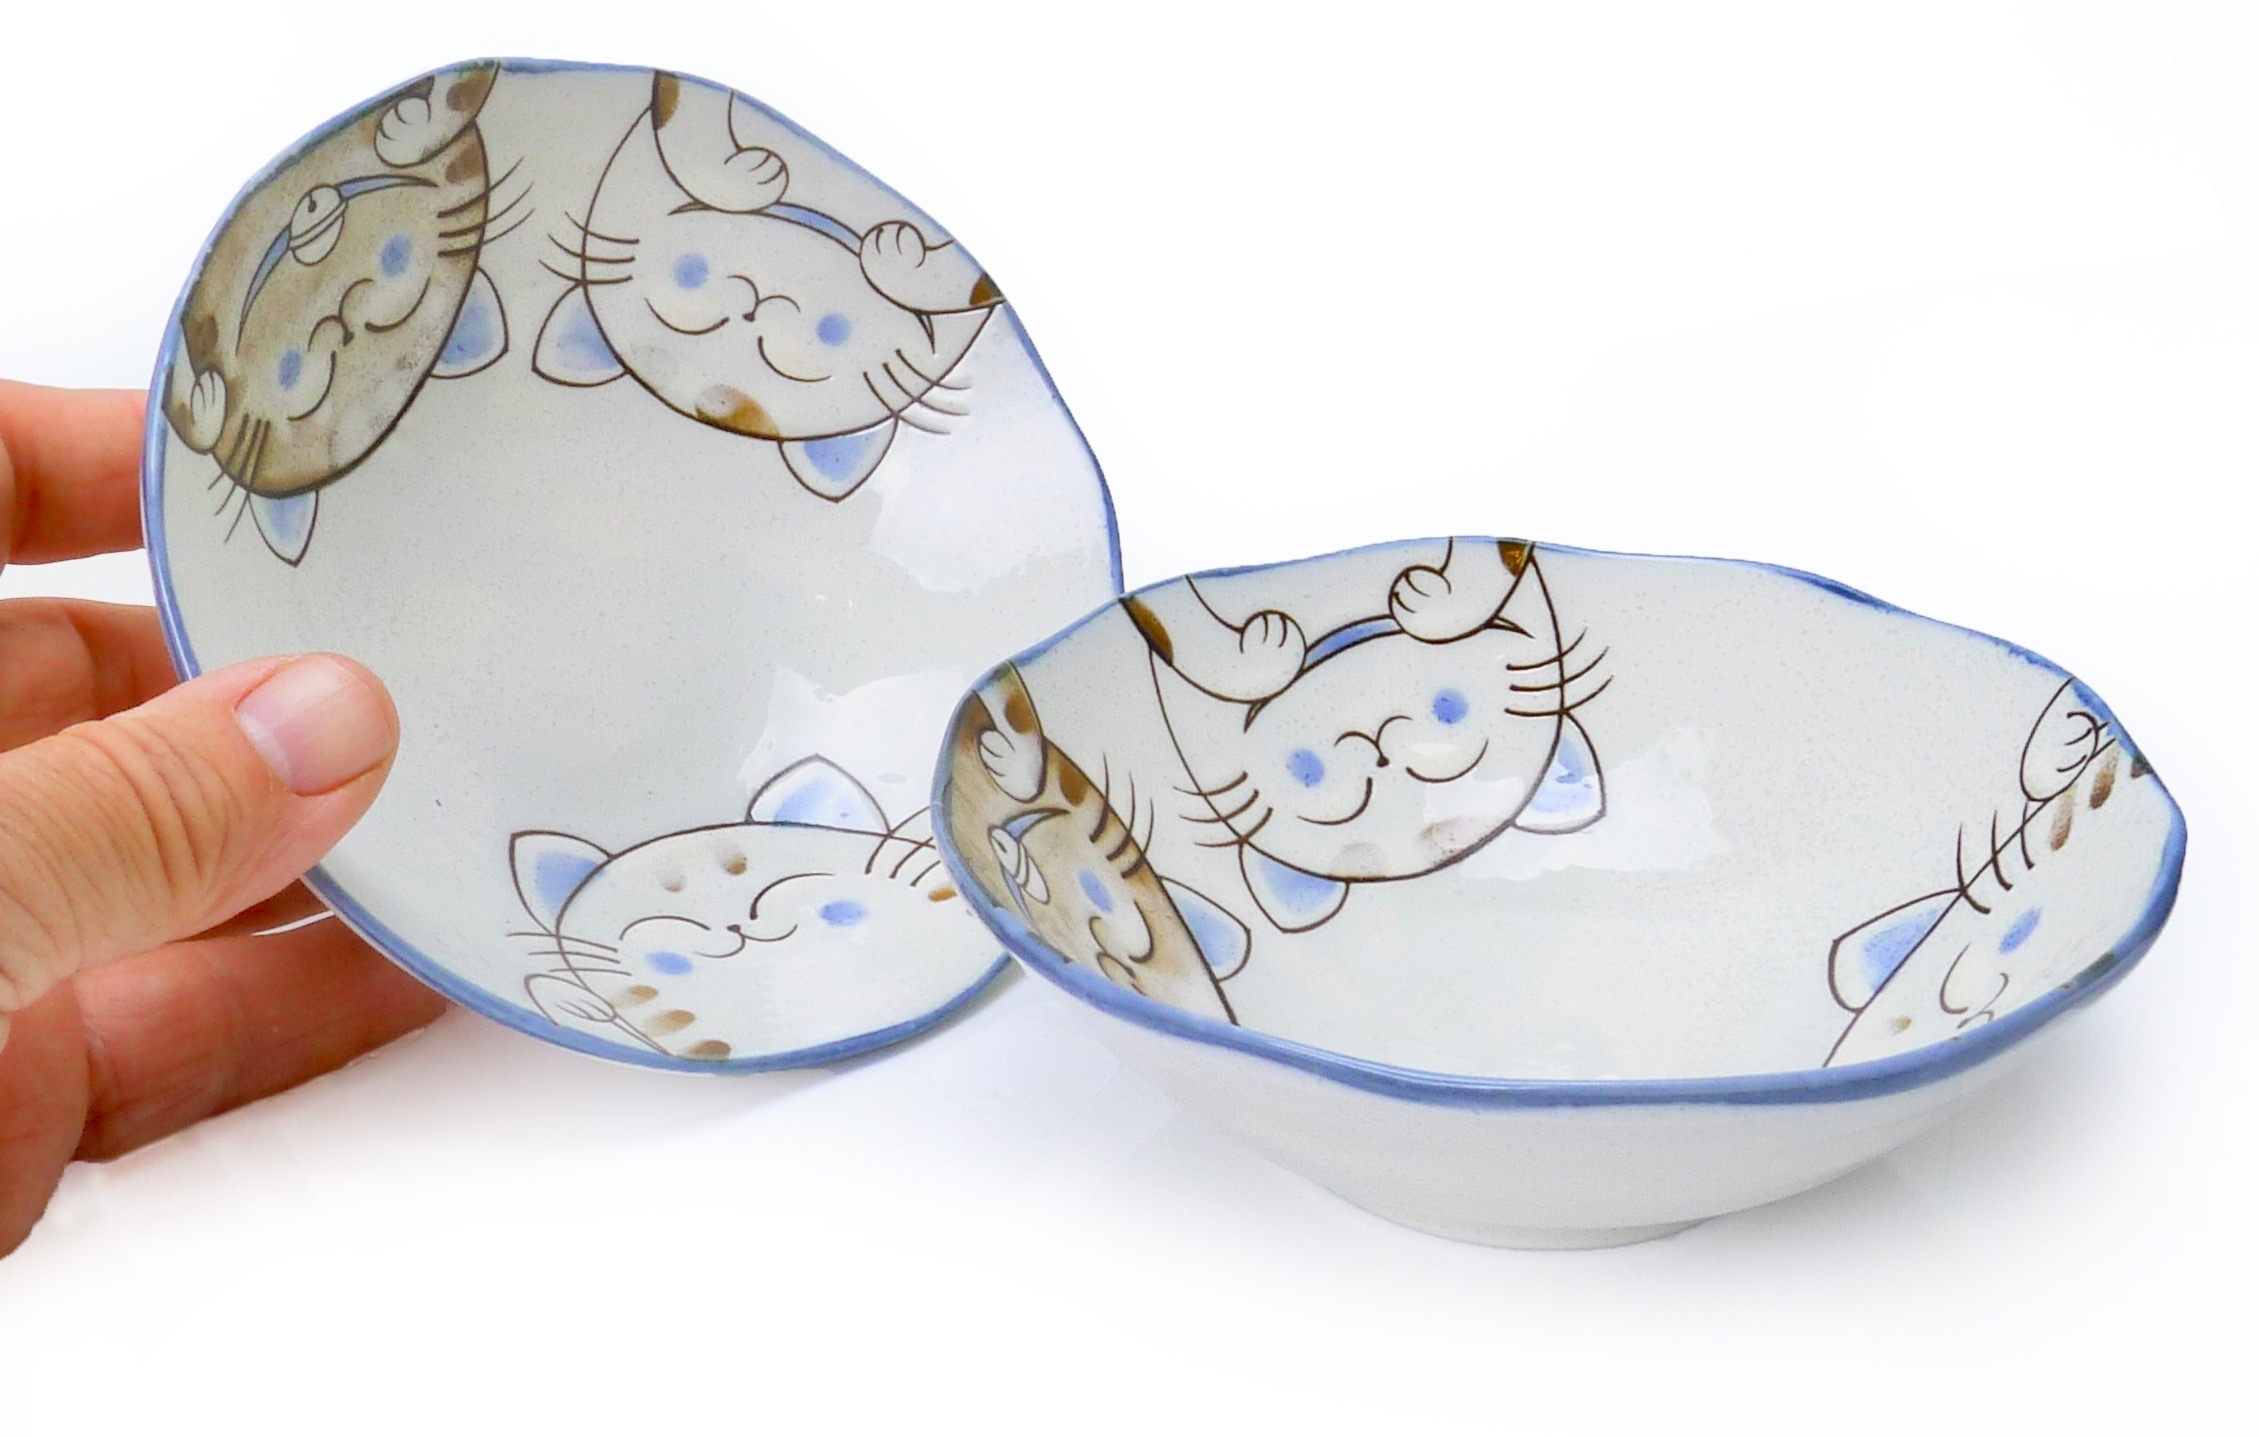 Image of Porcelain Bowls with Cute Cat Design 6.75-Inch, Set Of Two